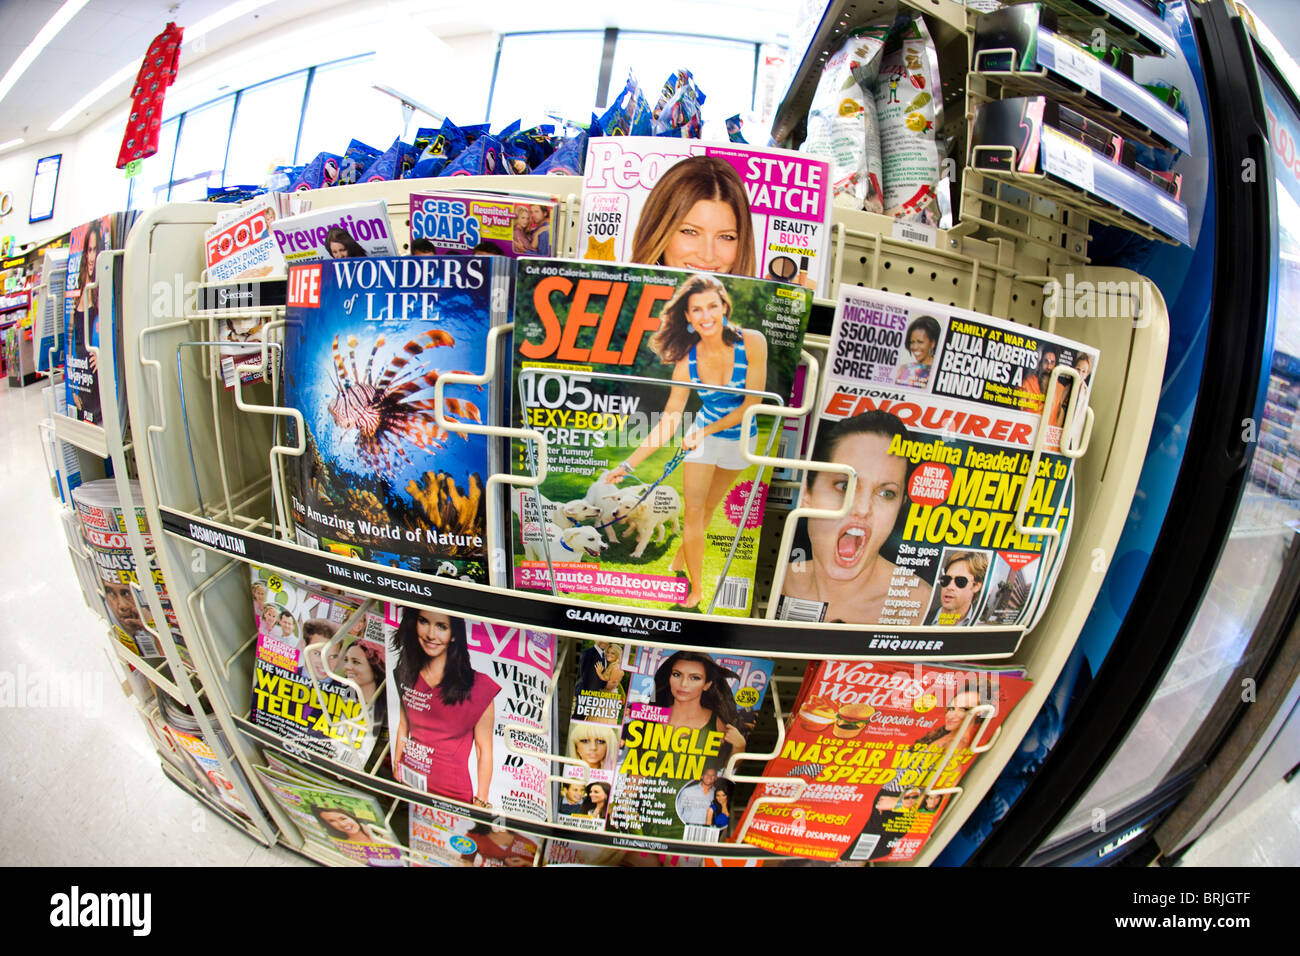 tabloid sensational news stories magazine rack in a store, United States - Stock Image